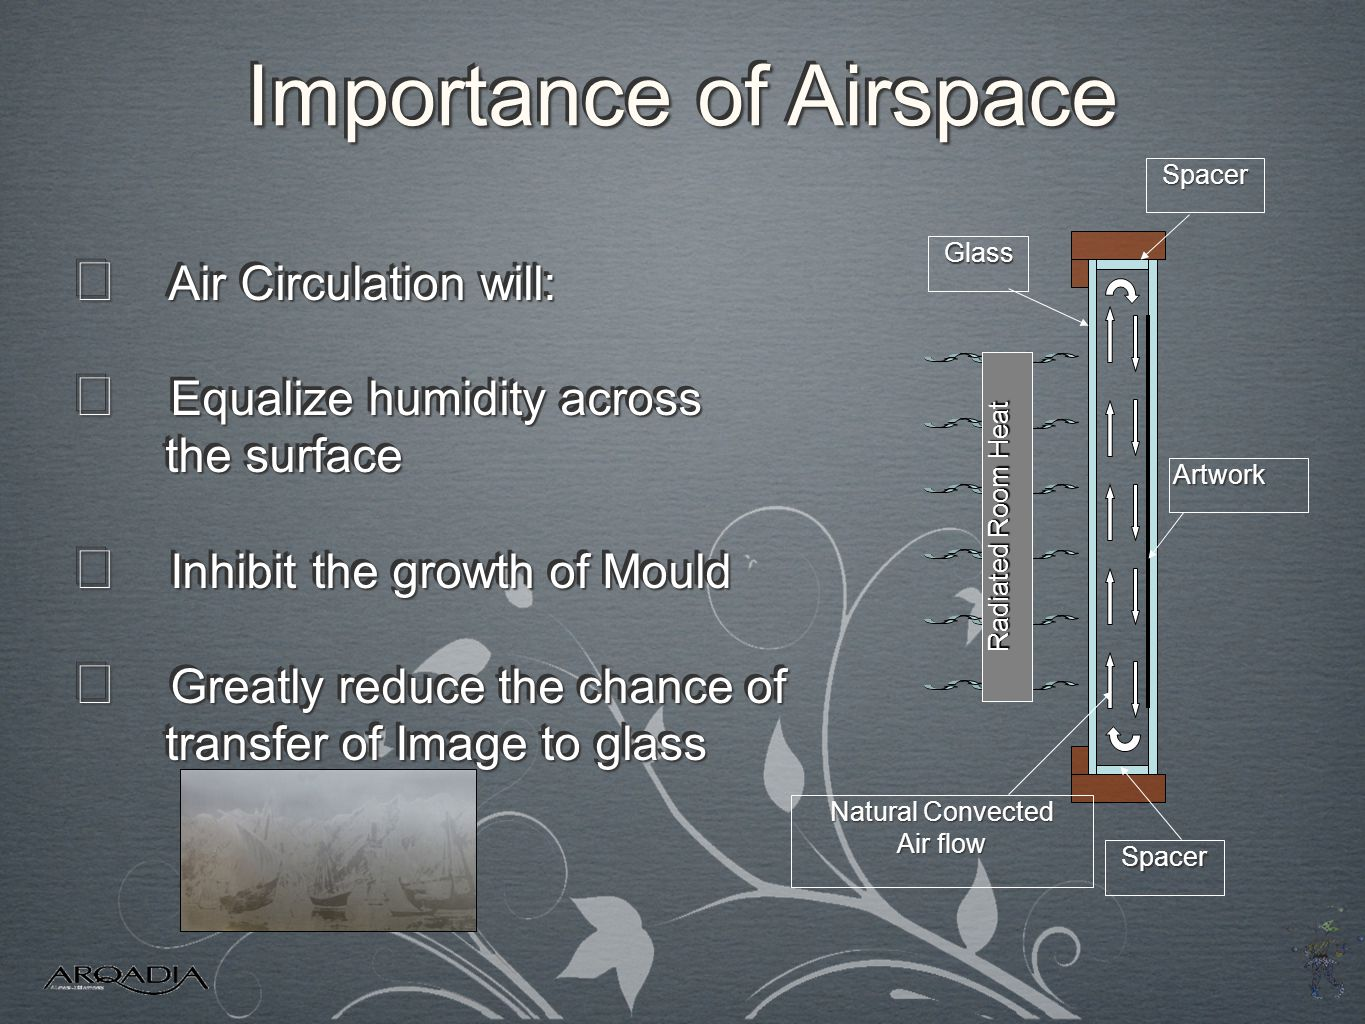 Importance of Airspace Radiated Room Heat Spacer Spacer Natural Convected Air flow Glass Artwork ★ Air Circulation will: ★ Equalize humidity across th